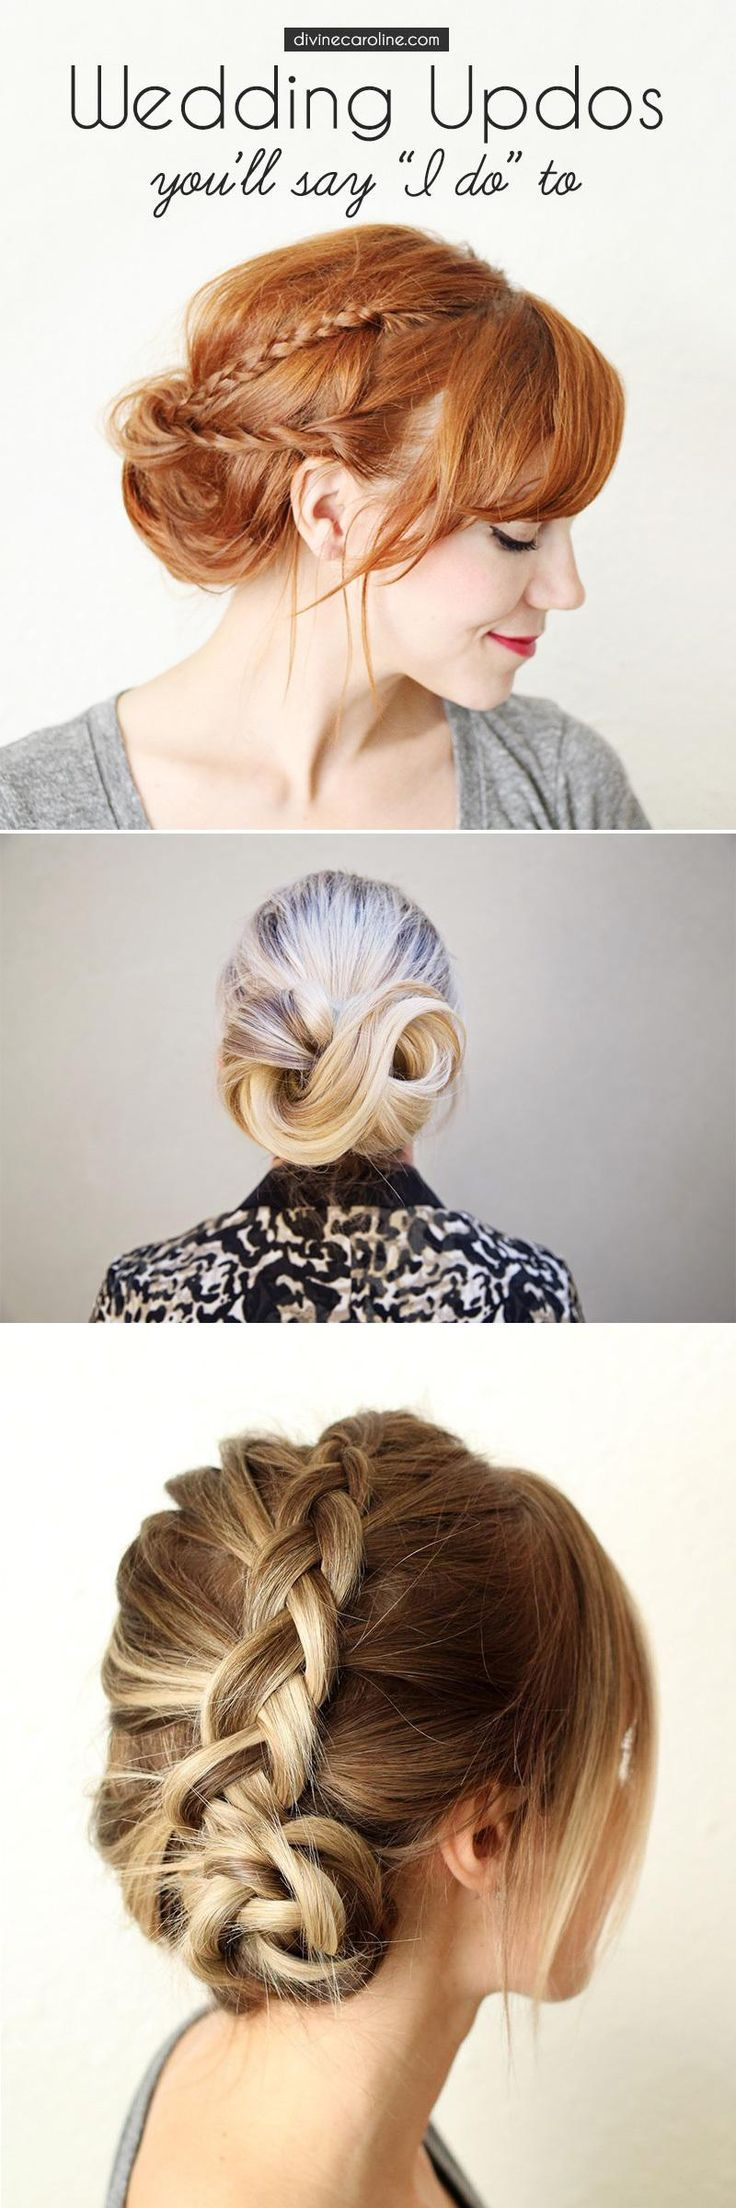 Throw your hair up in a classy way and you won't have to worry about it all day.